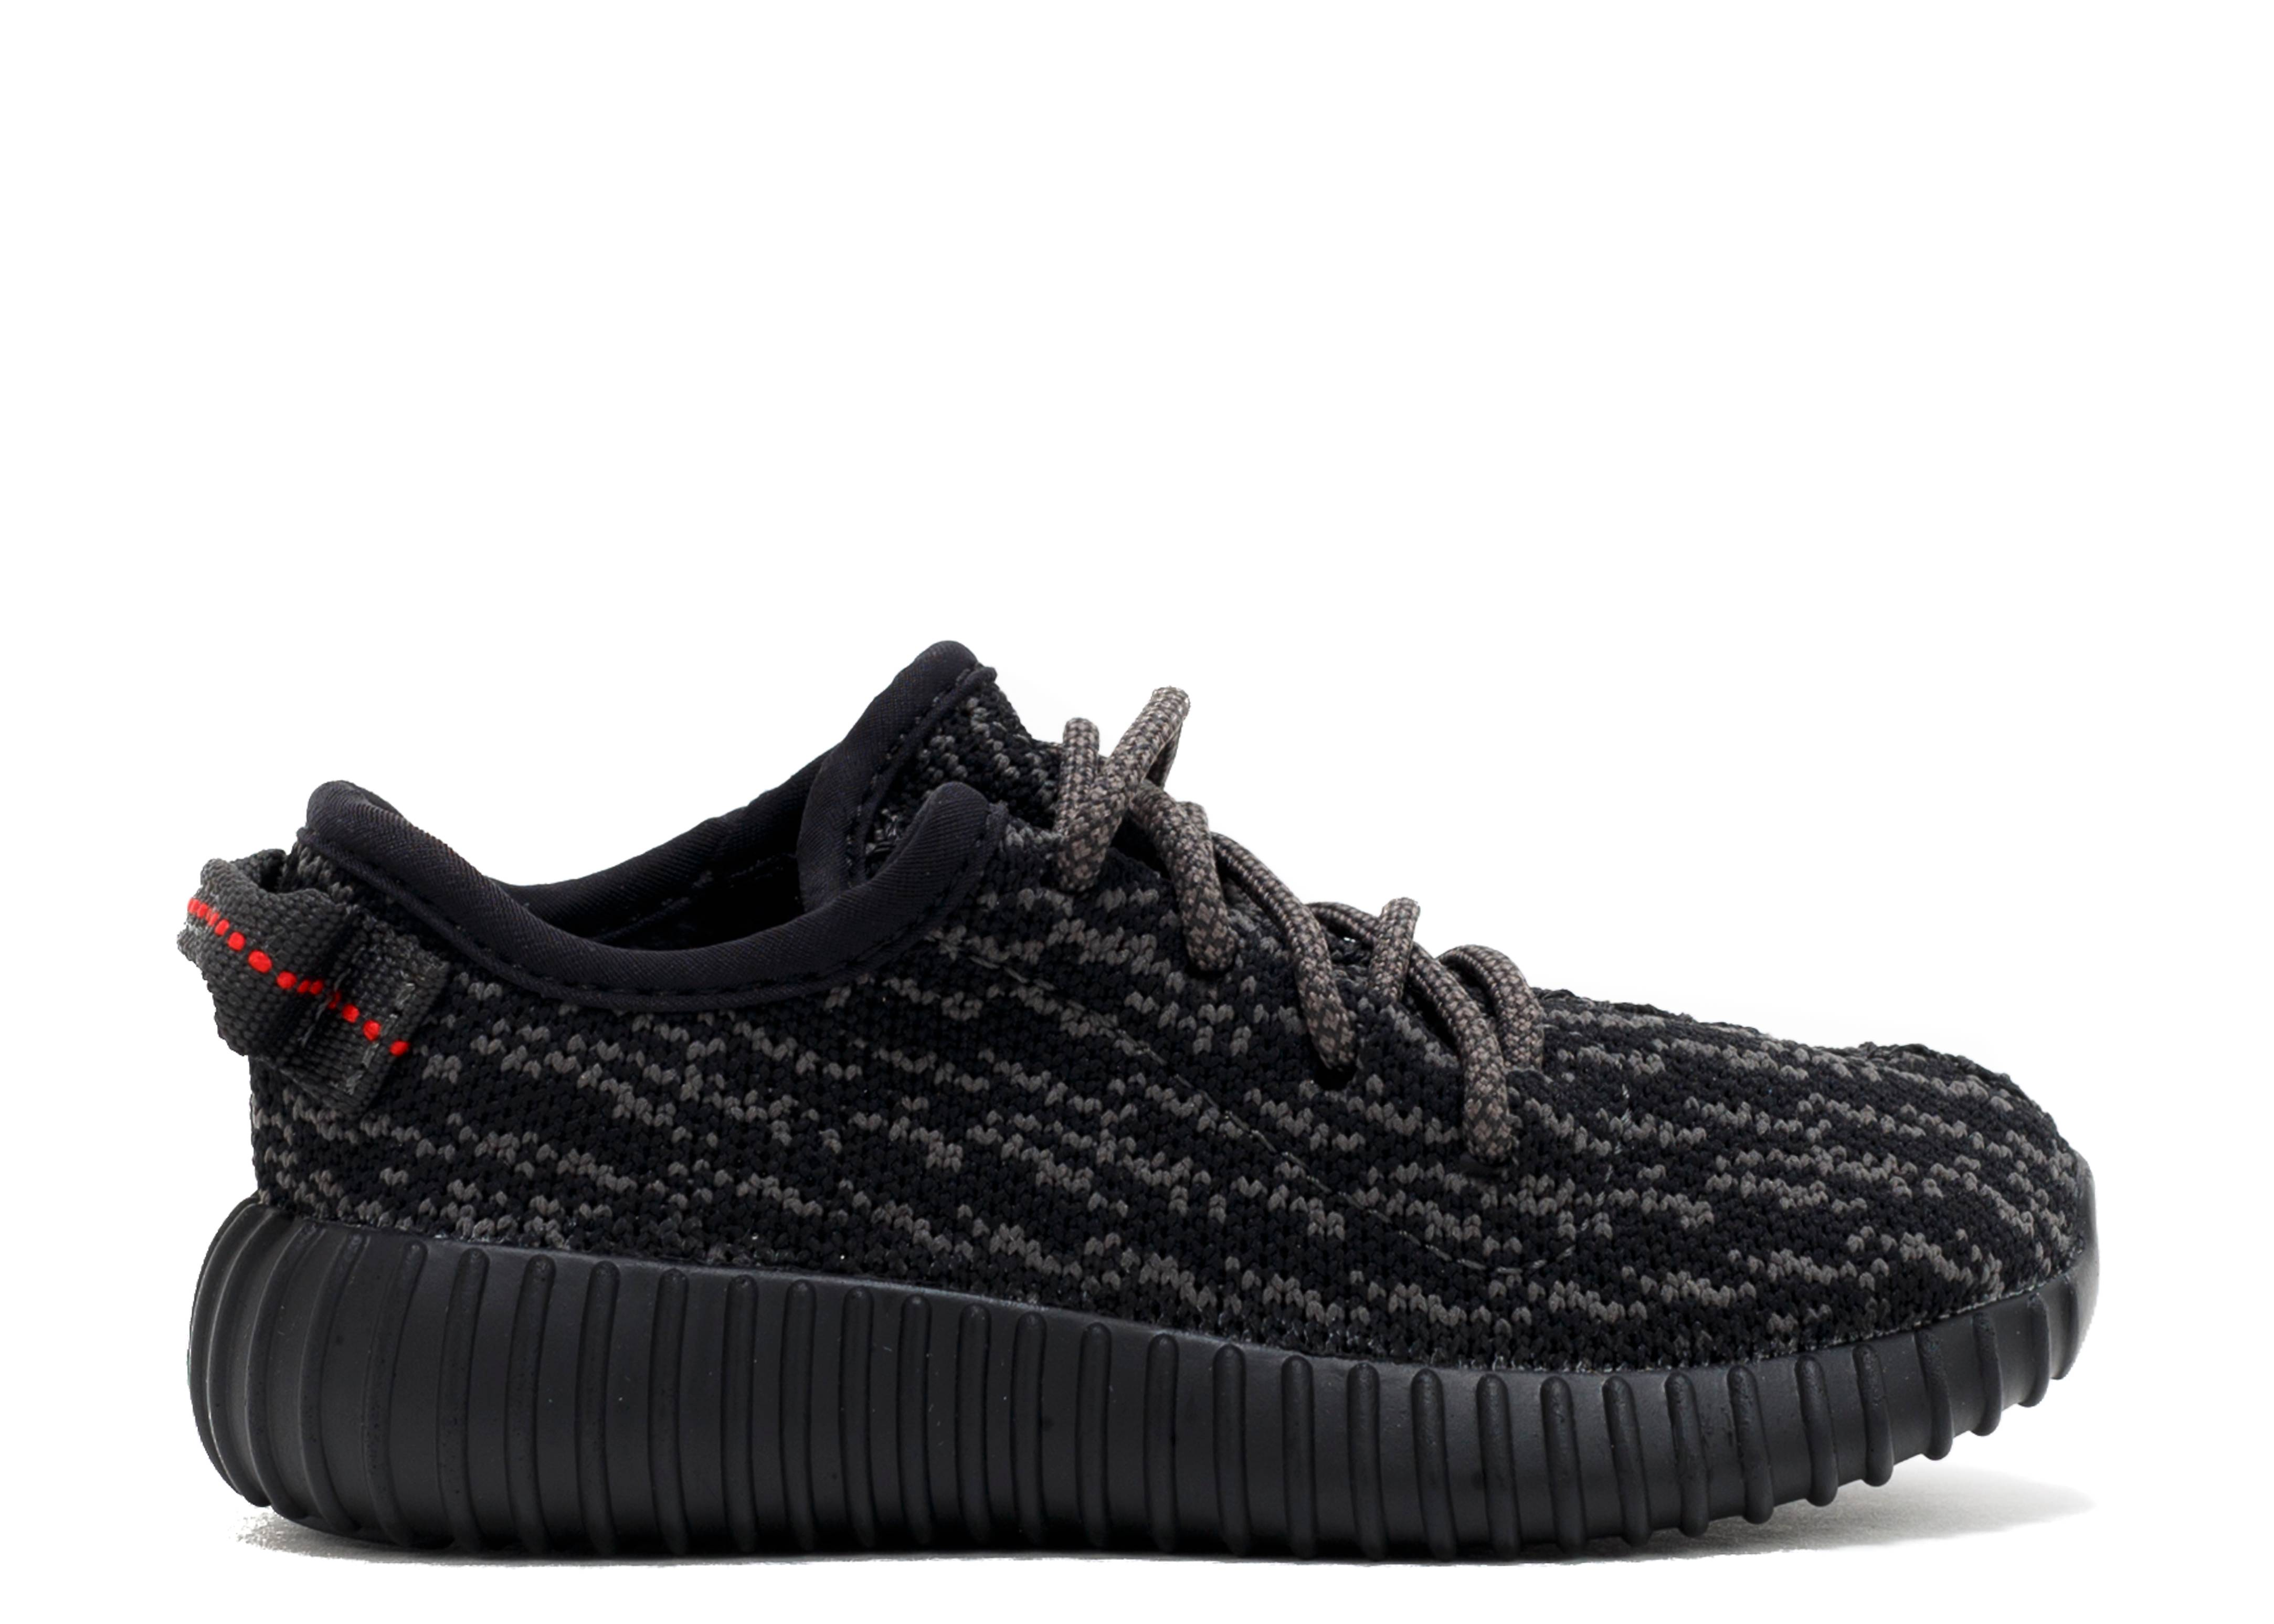 "Yeezys Flight Club >> Yeezy Boost 350 Infant ""pirate Black"" - Adidas - bb5355 - pirblk/blugra/cblack 